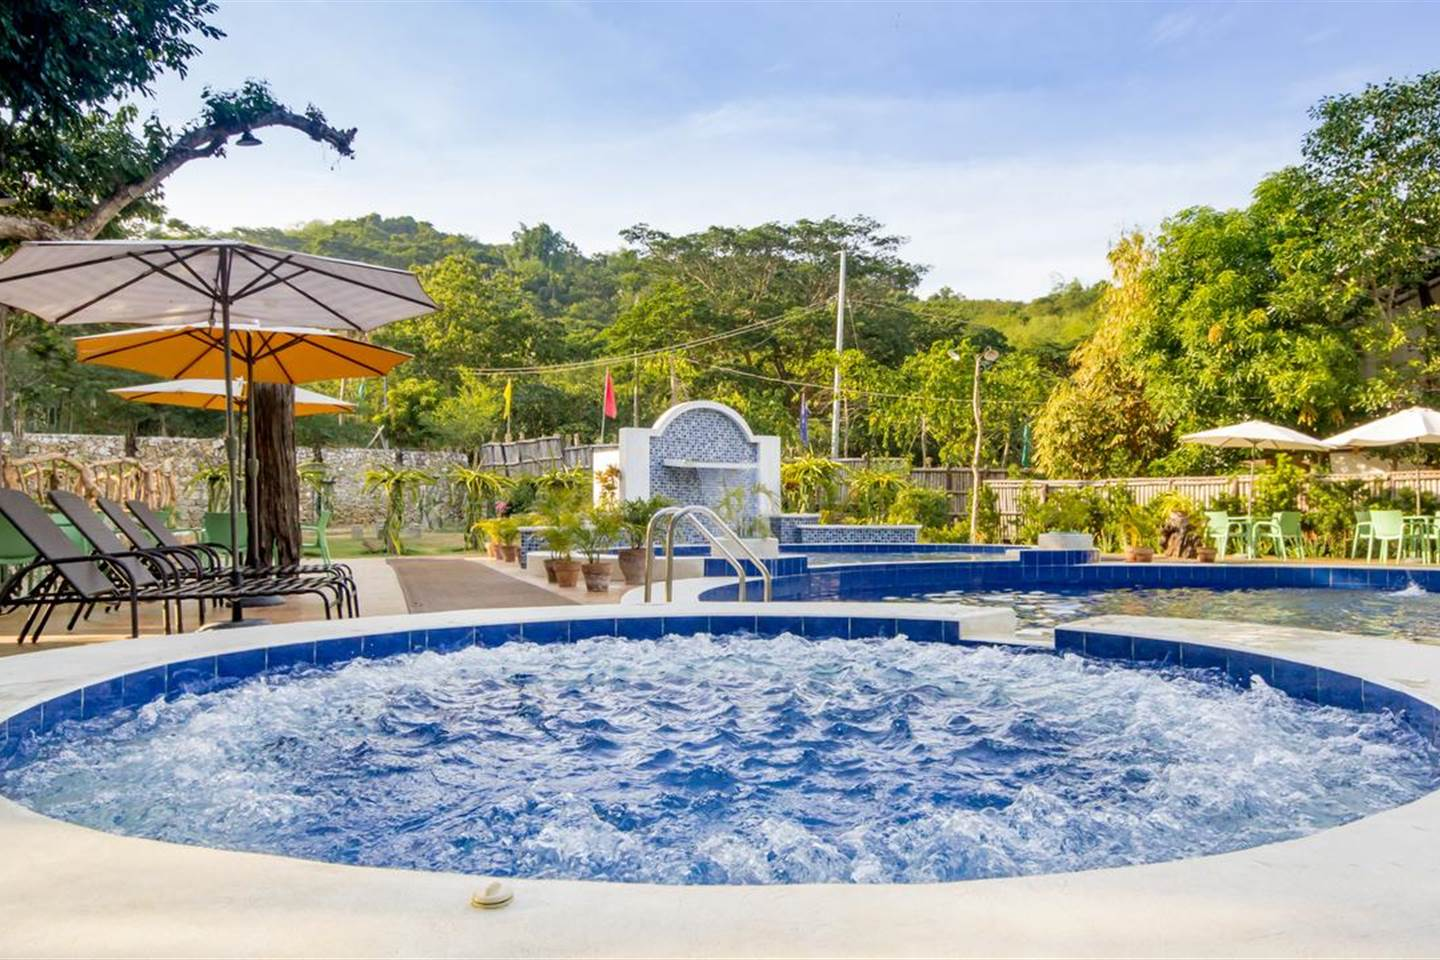 Pleasing Deluxe Room - Pool View at Pangasinan